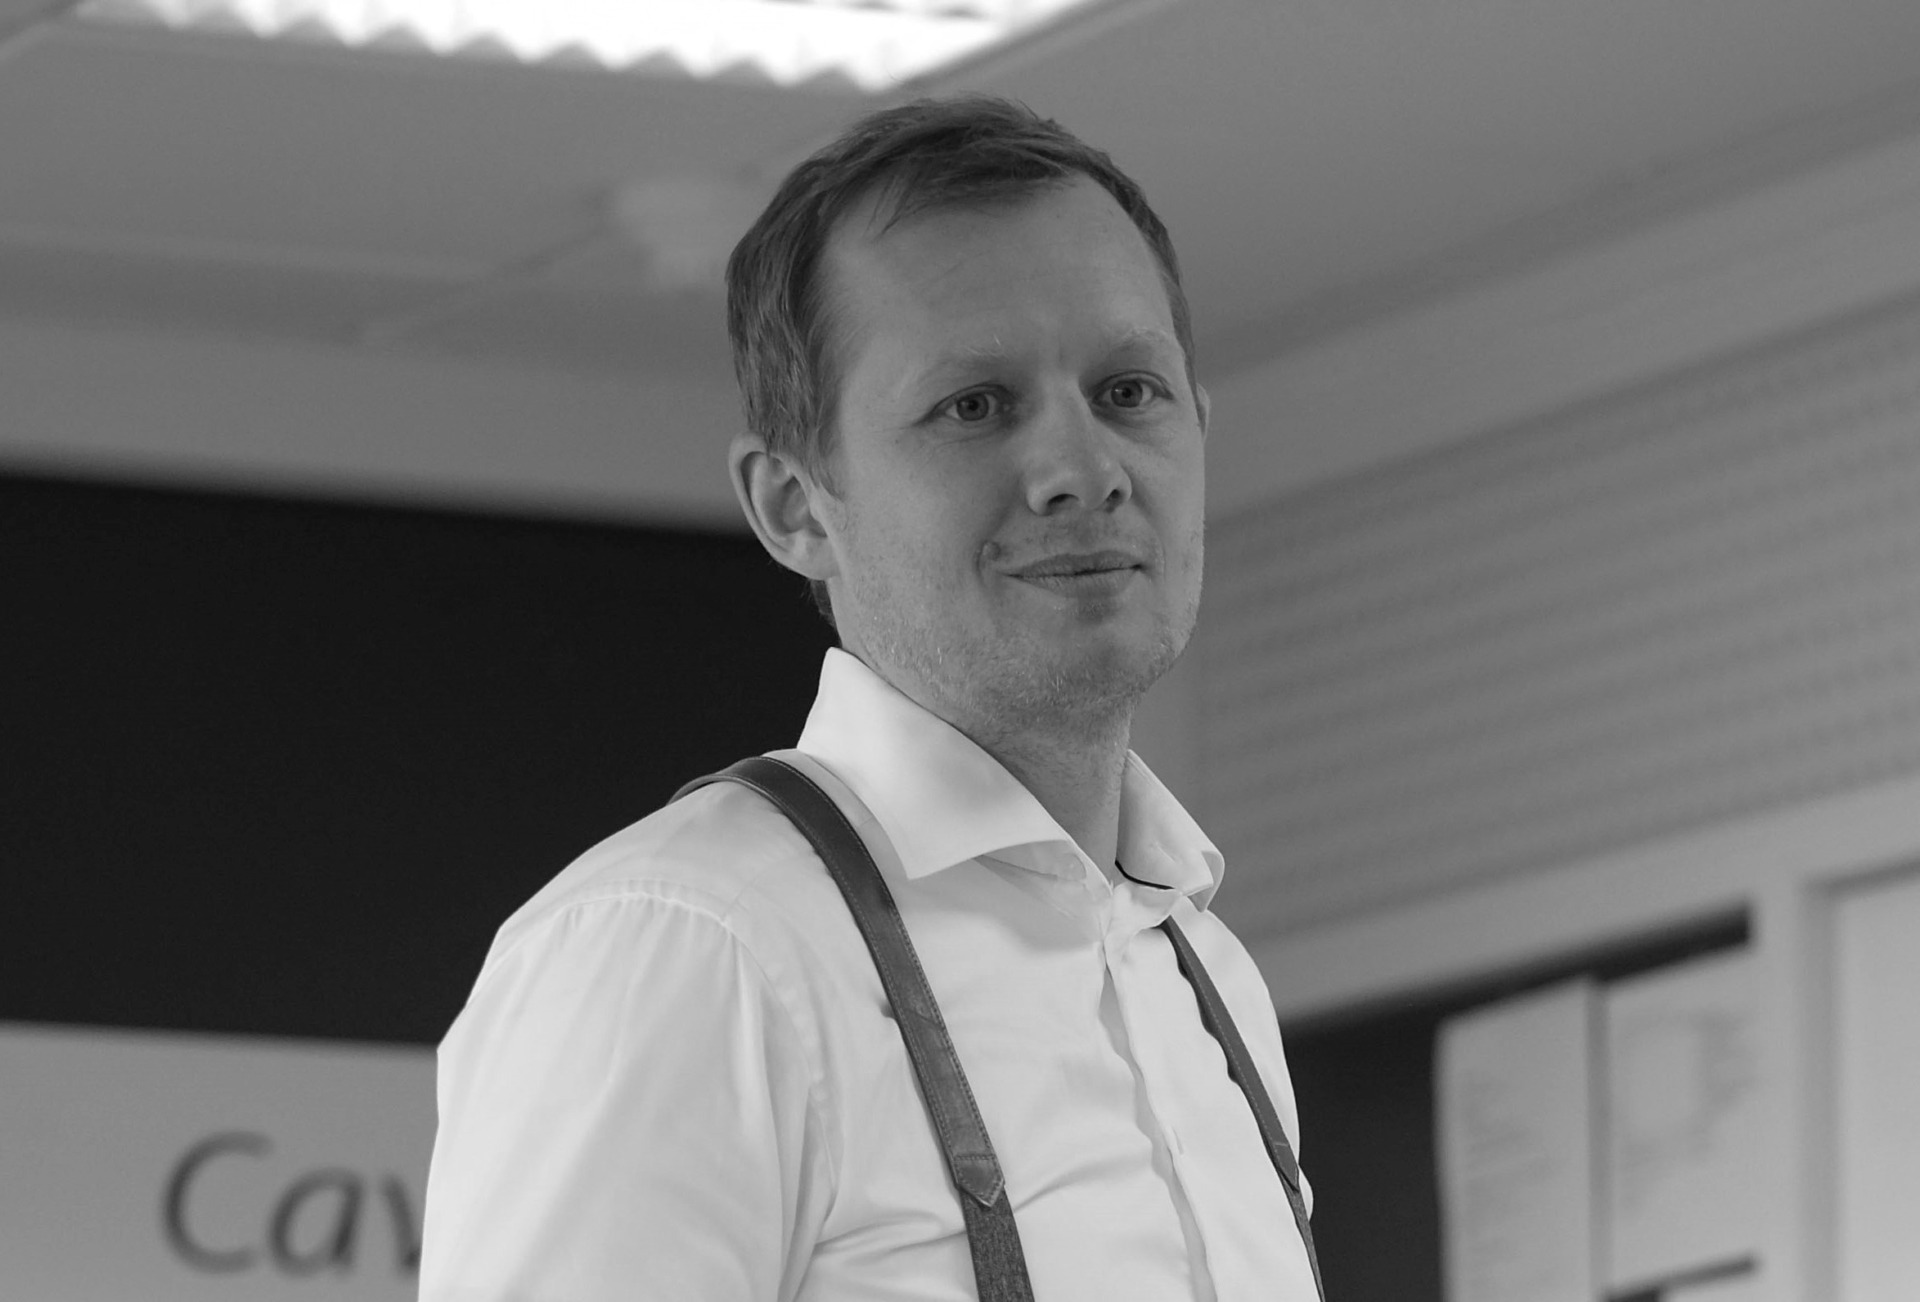 CEO of Cavi-art Jens Christian Møller Jr